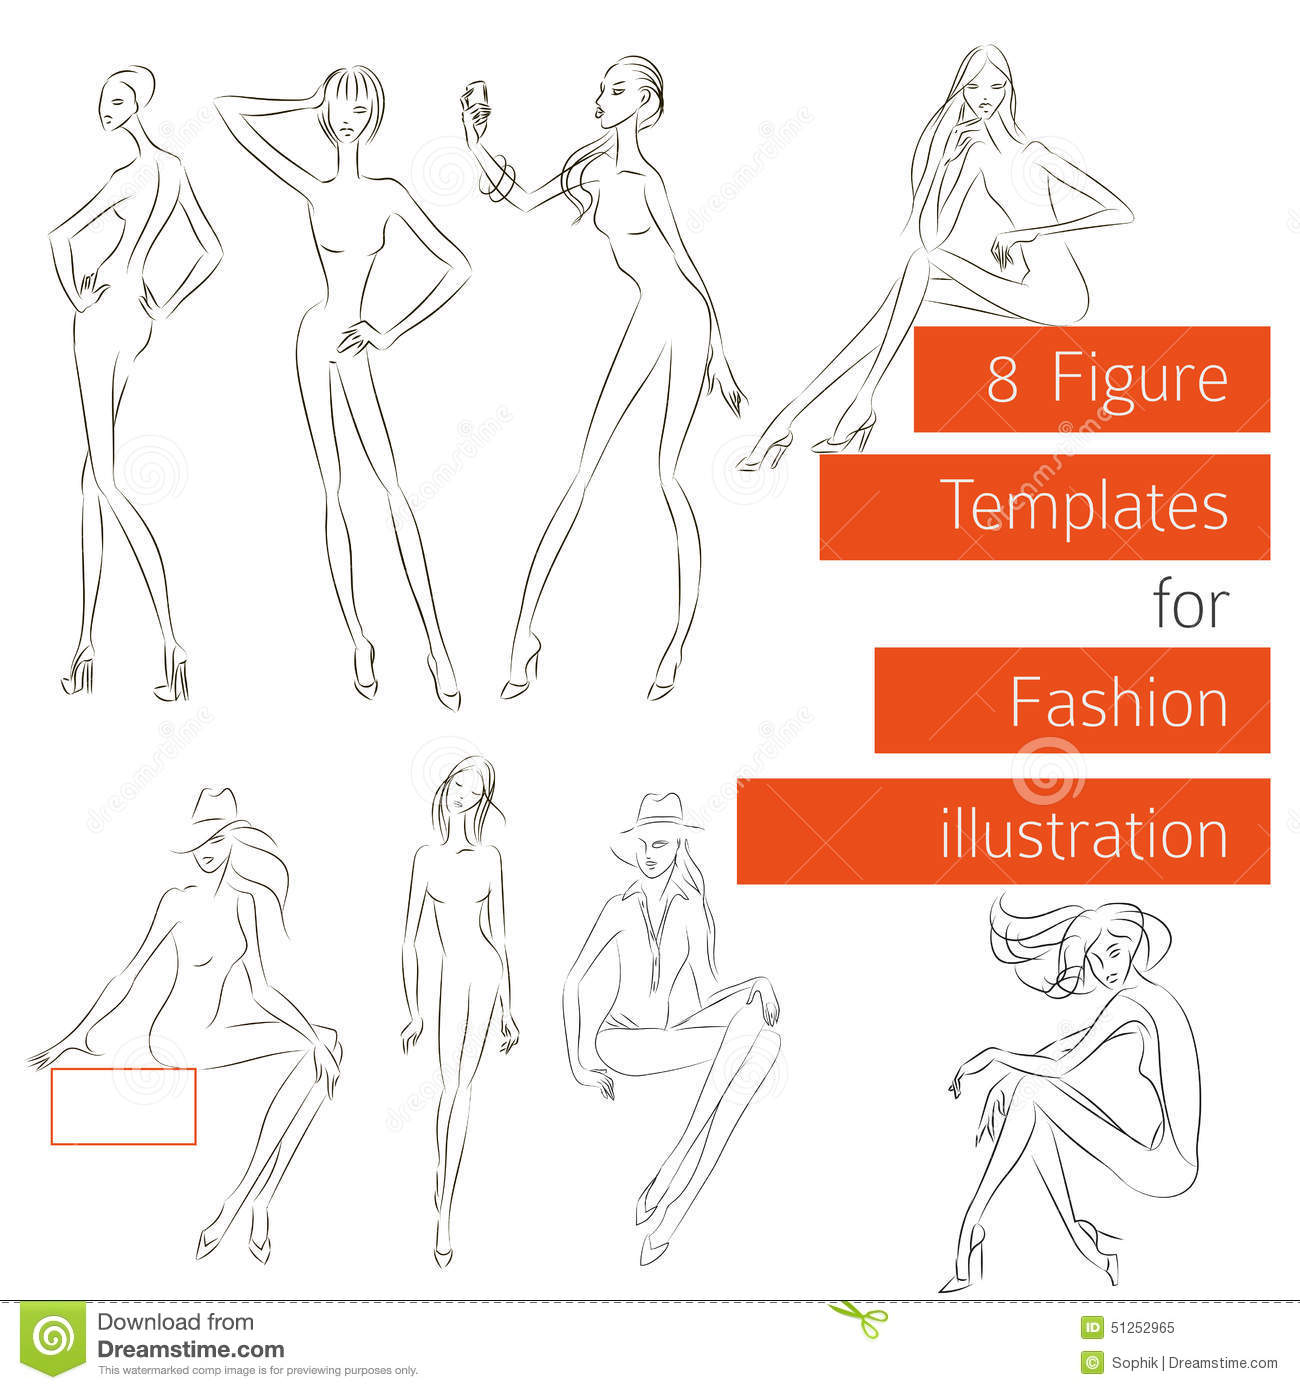 Figure templates for fashion illustration stock for Fashion designing templates free download